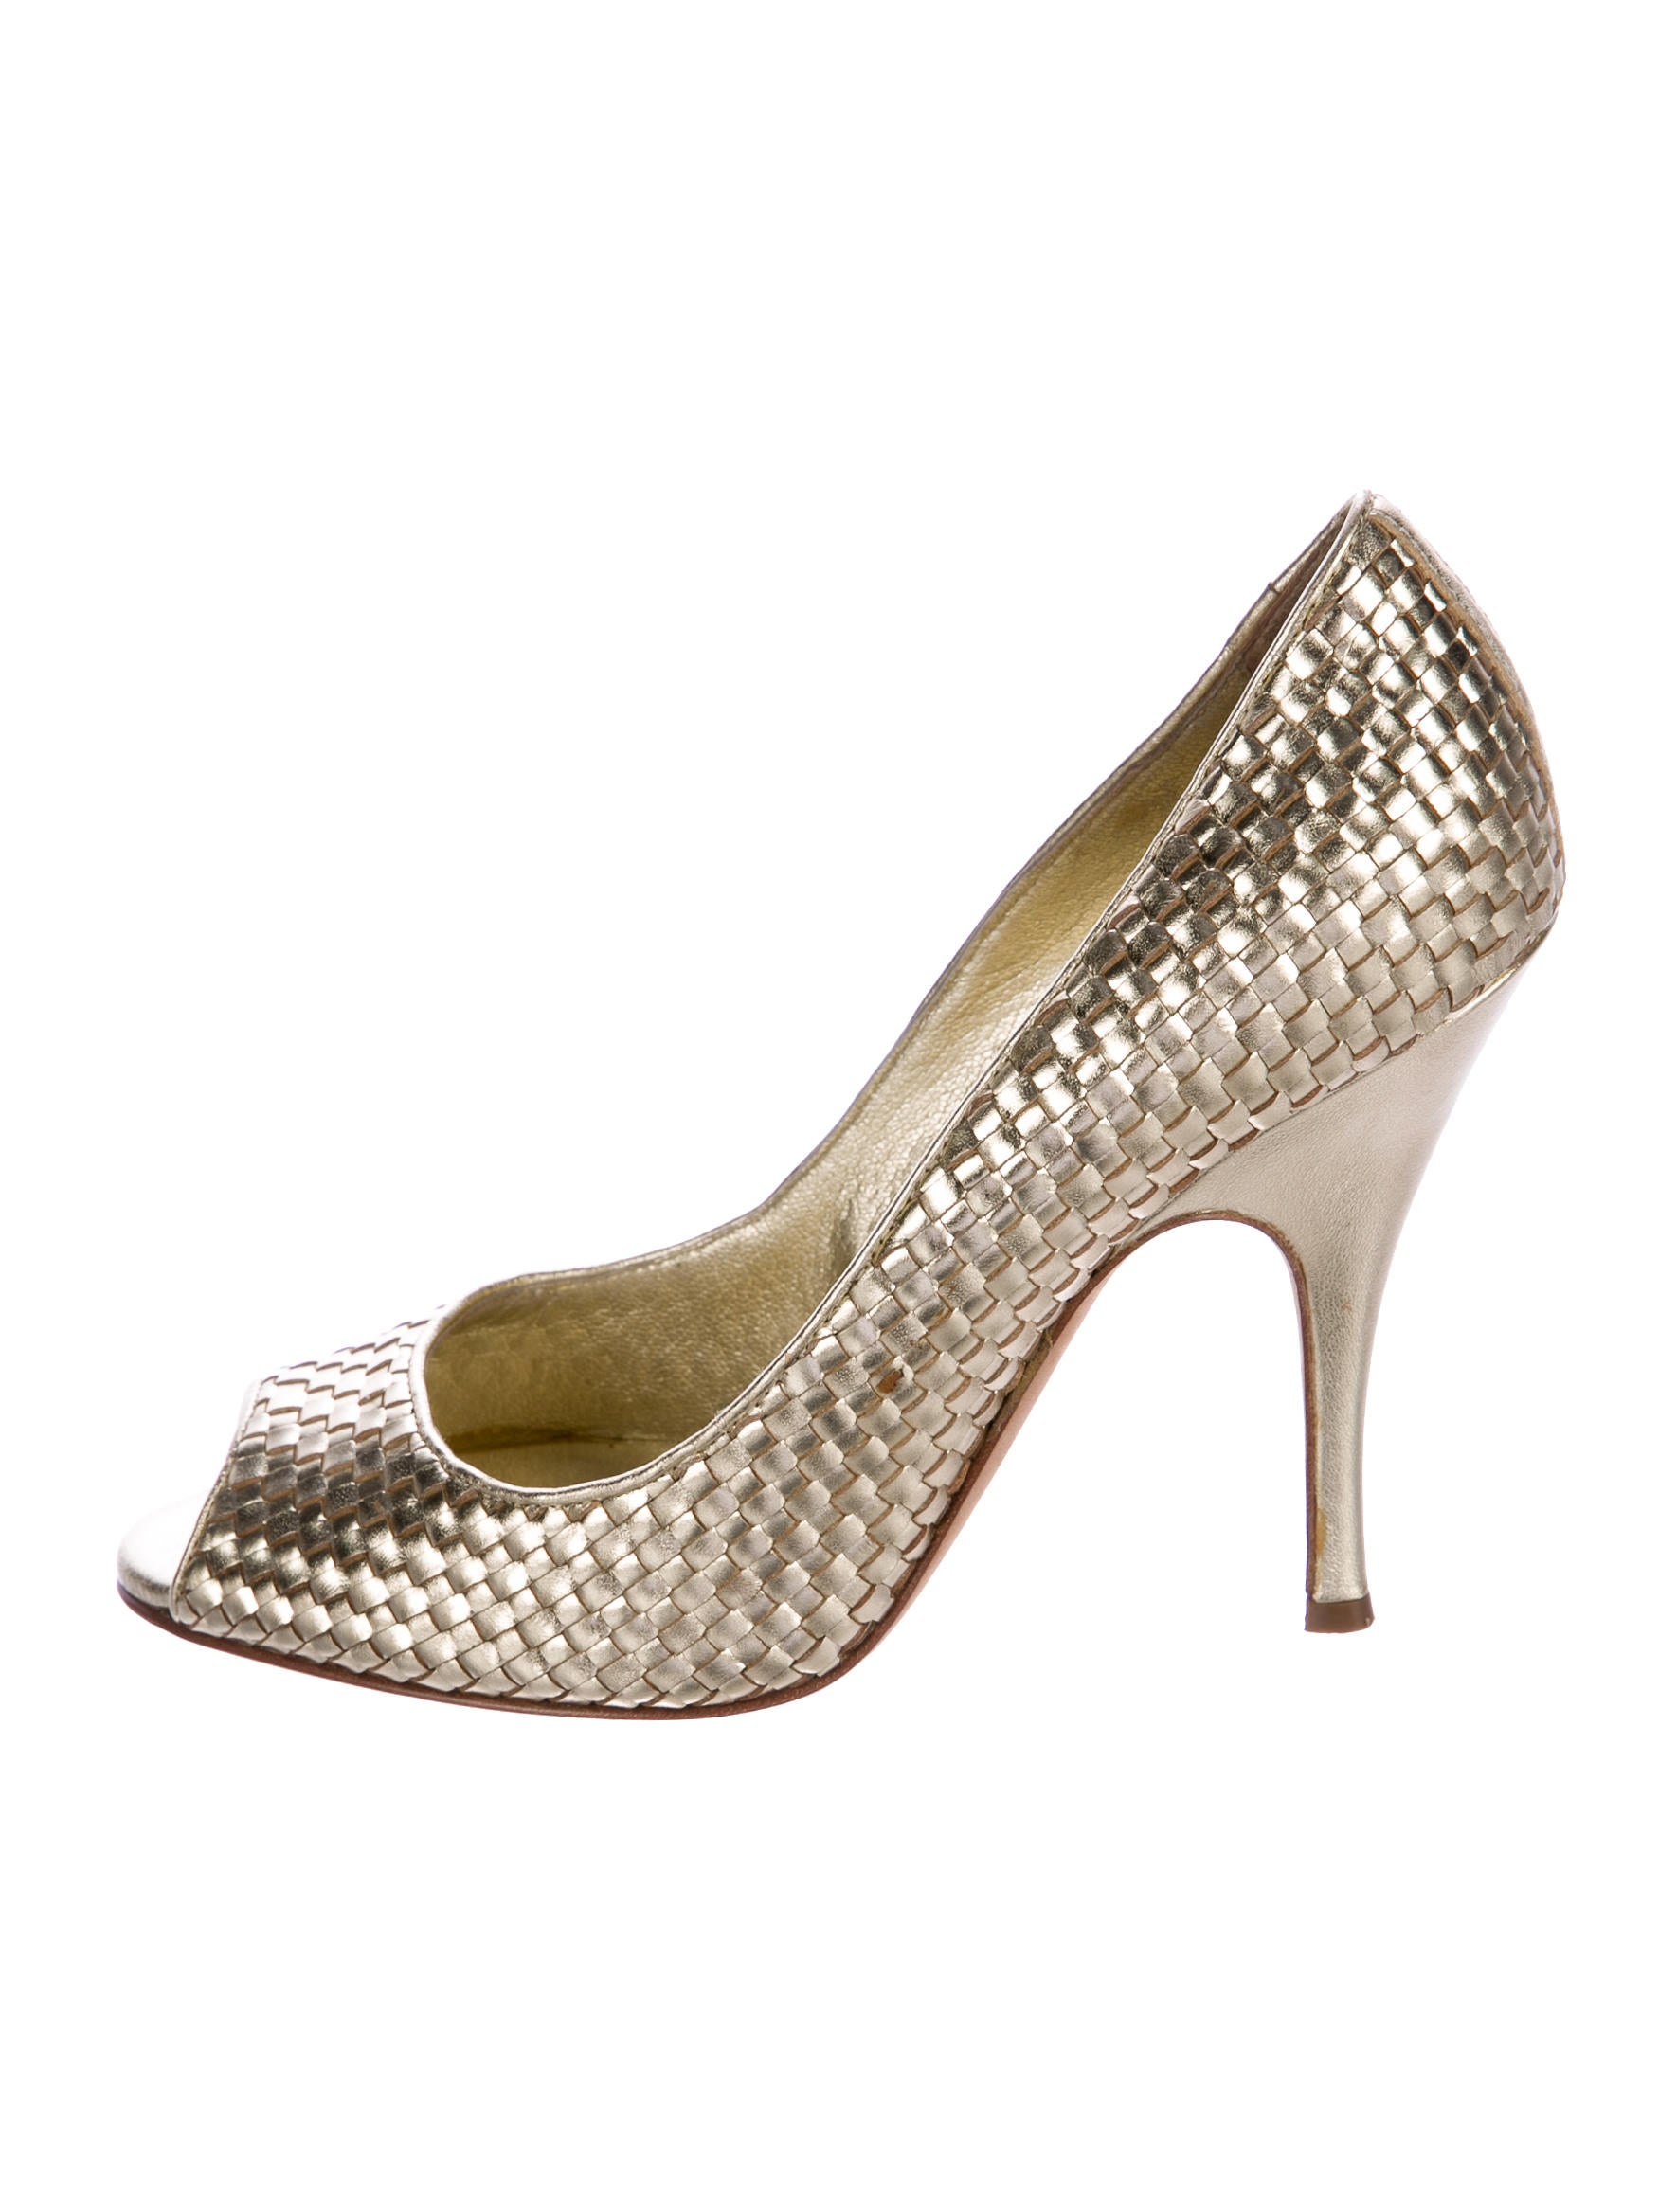 D&G Metallic Leather Pumps from china online cheap 2015 sale how much sale get authentic iGdDHO